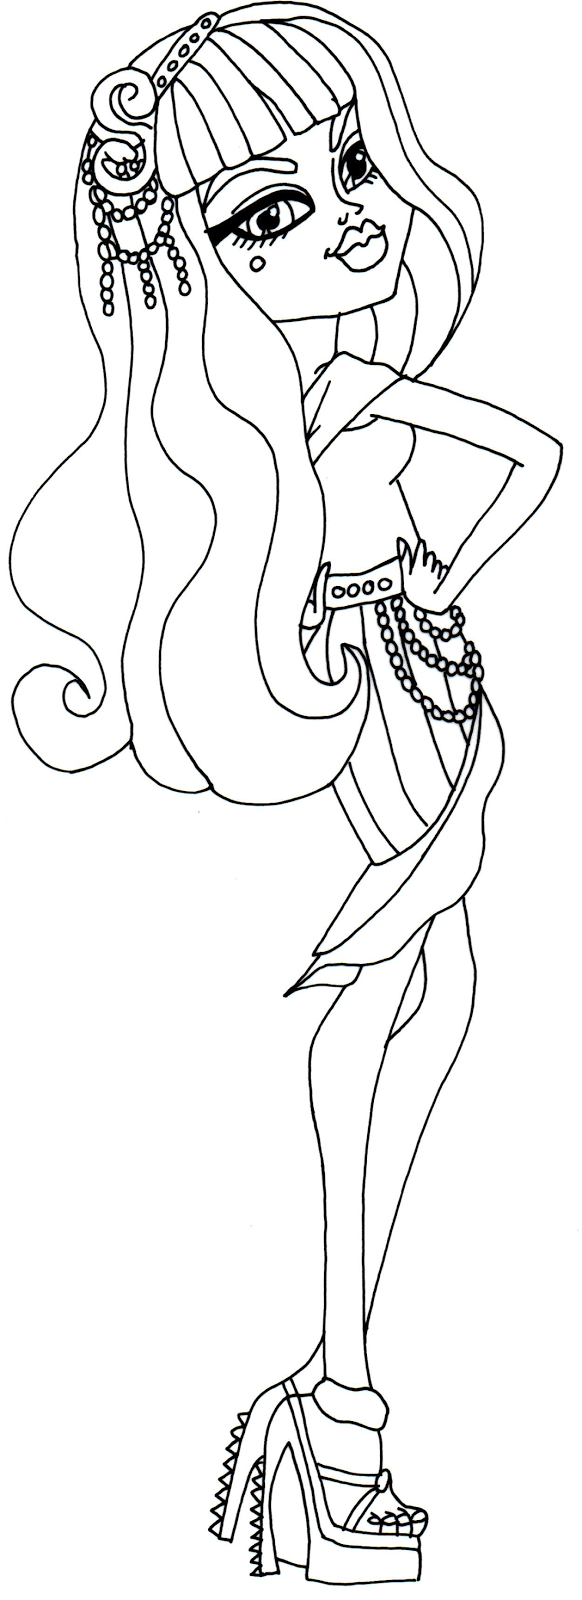 batsy claro monster high coloring page png 773 1600 monster